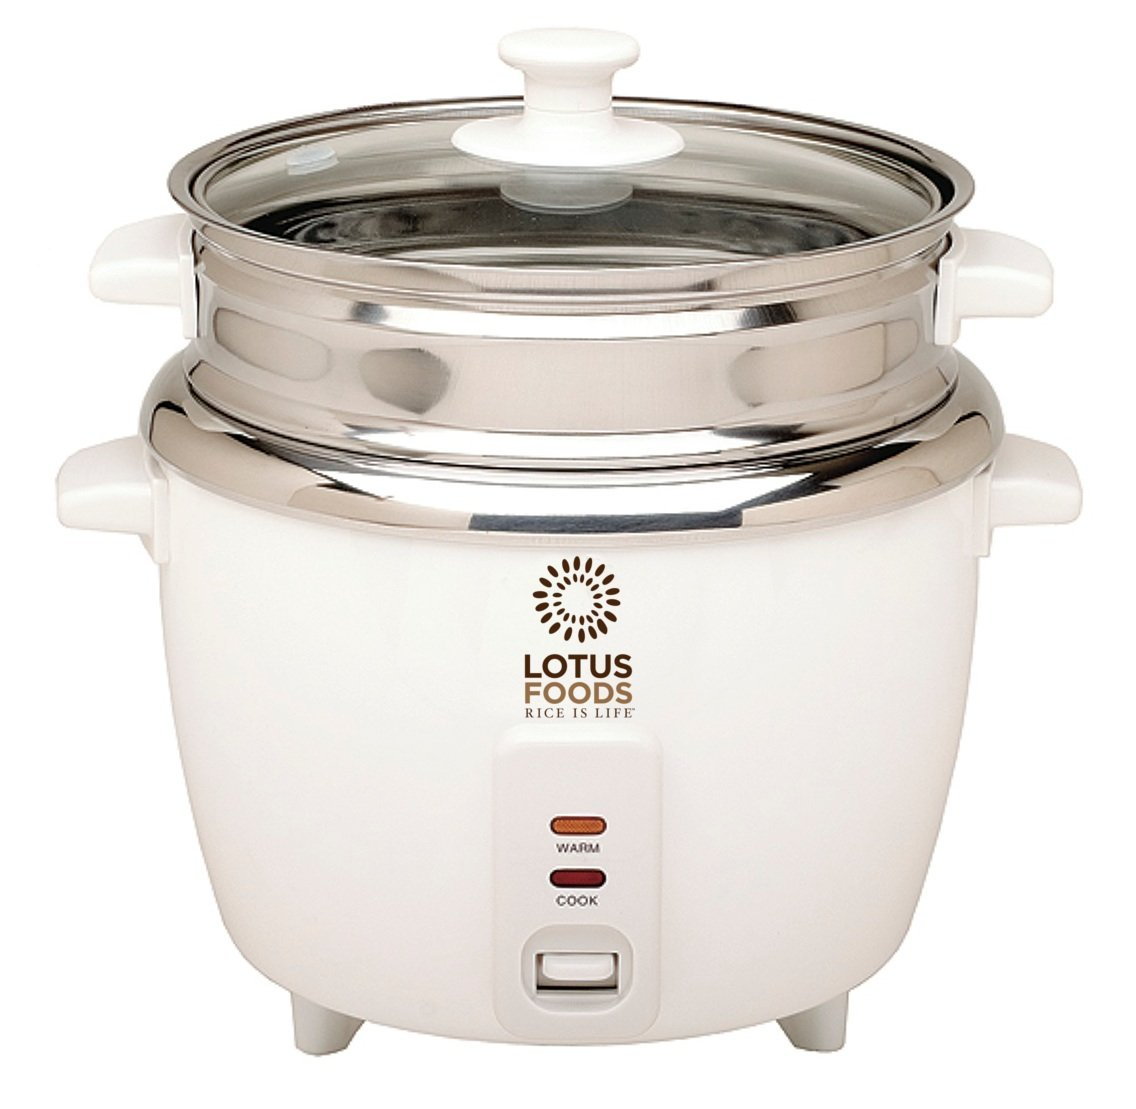 Lotus Foods Gourmet Stainless Steel Rice Cooker and Steamer, 12 Cup Capacity